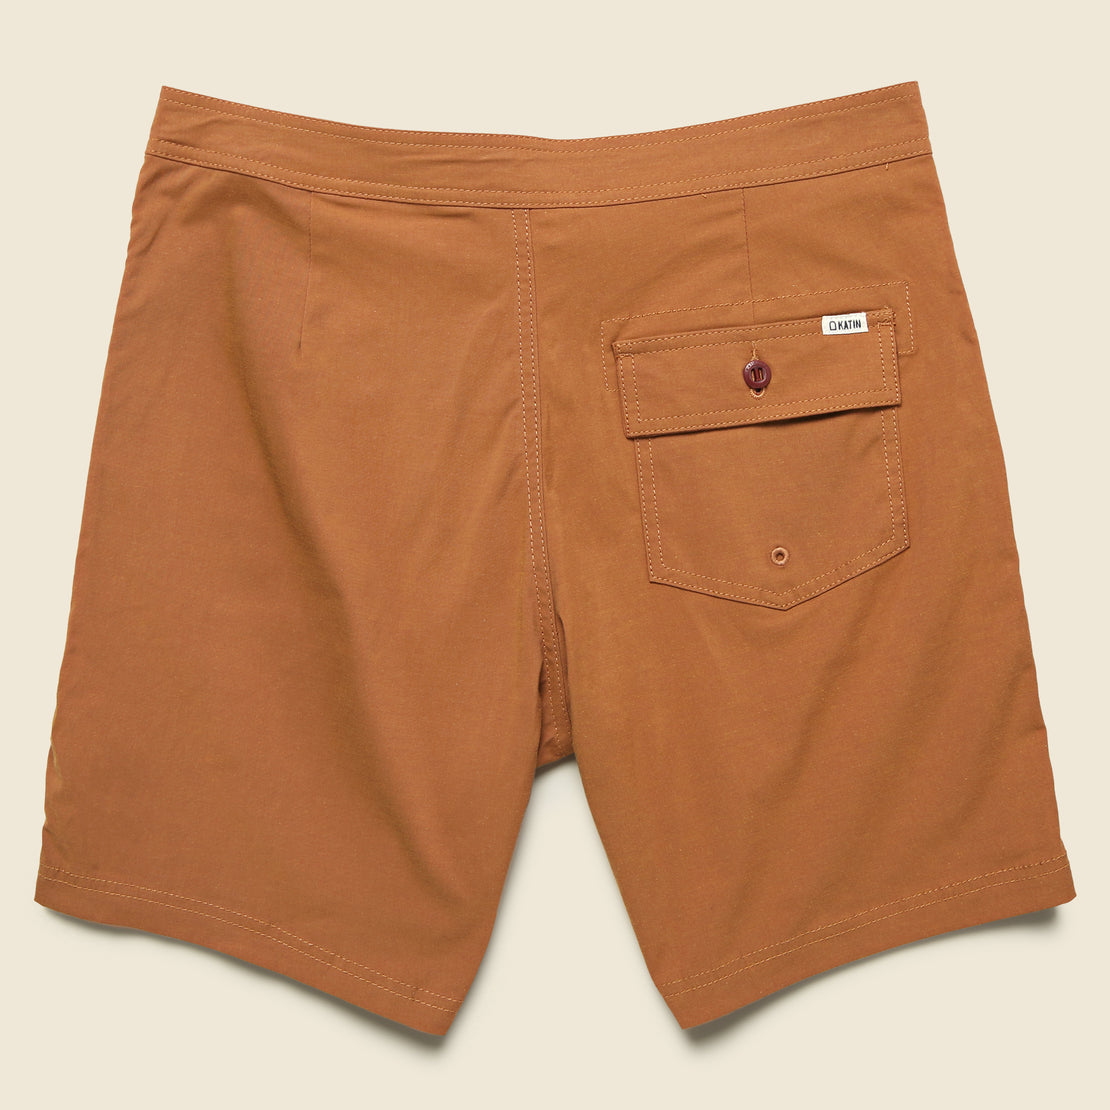 Wilson Boardshort - Light Brown